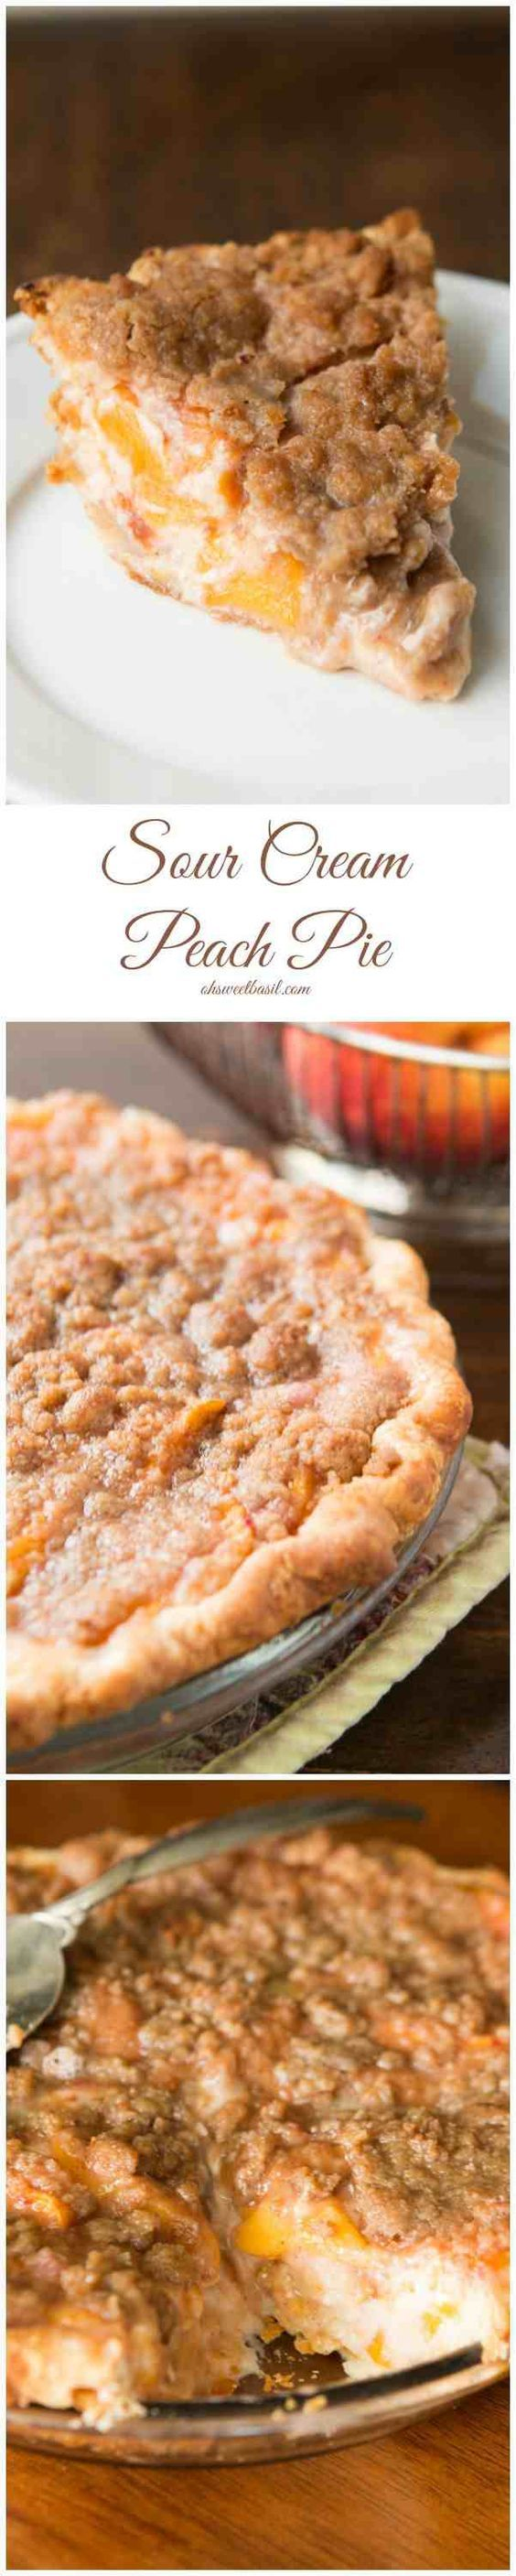 Our favorite pie! Sour cream peach pie with this awesome brown sugar crumble topping!! ohsweetbasil.com: